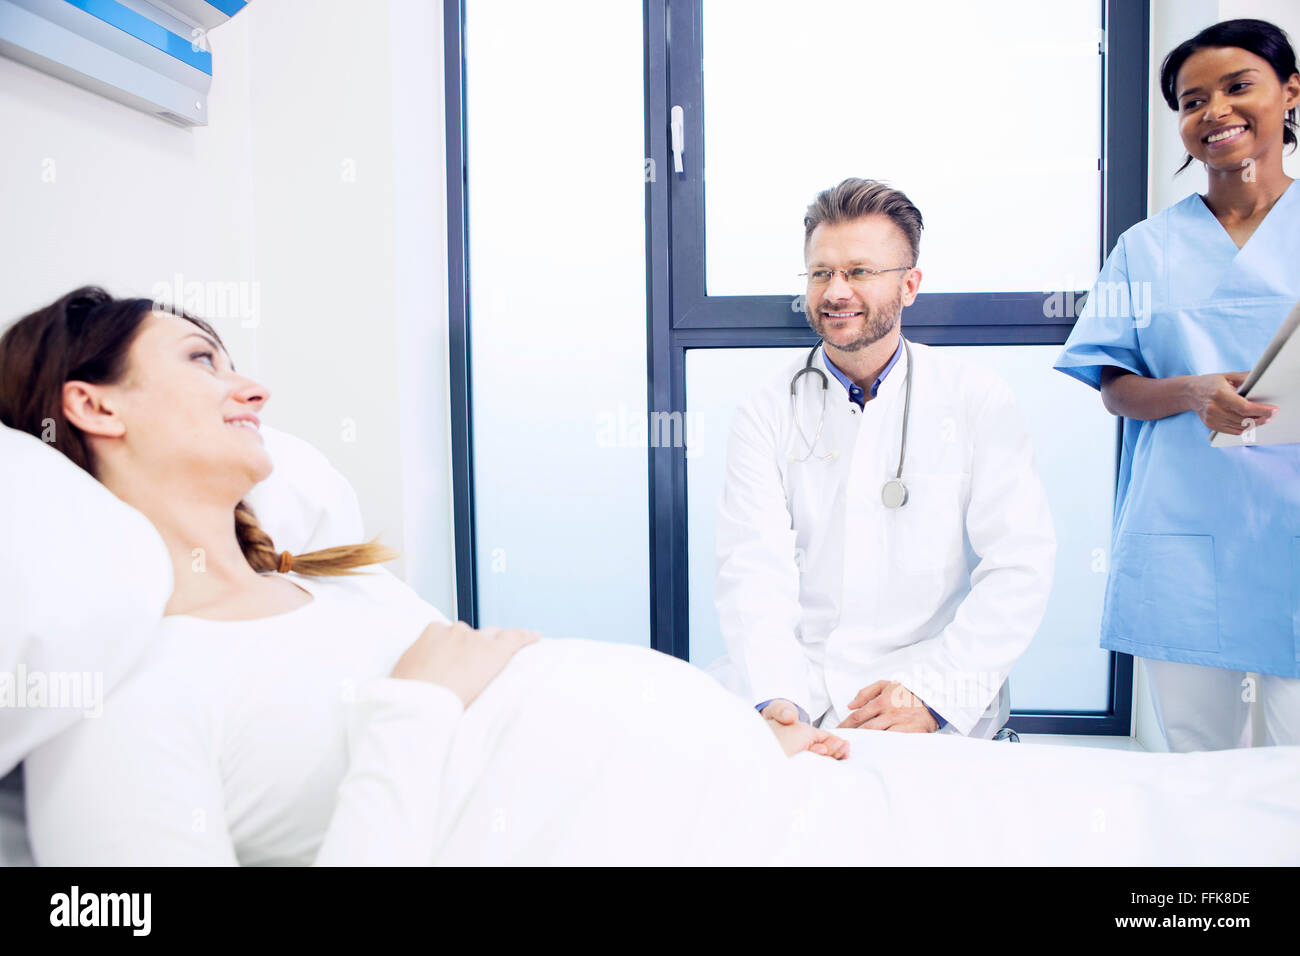 Doctor with patient in sick room of hospital - Stock Image